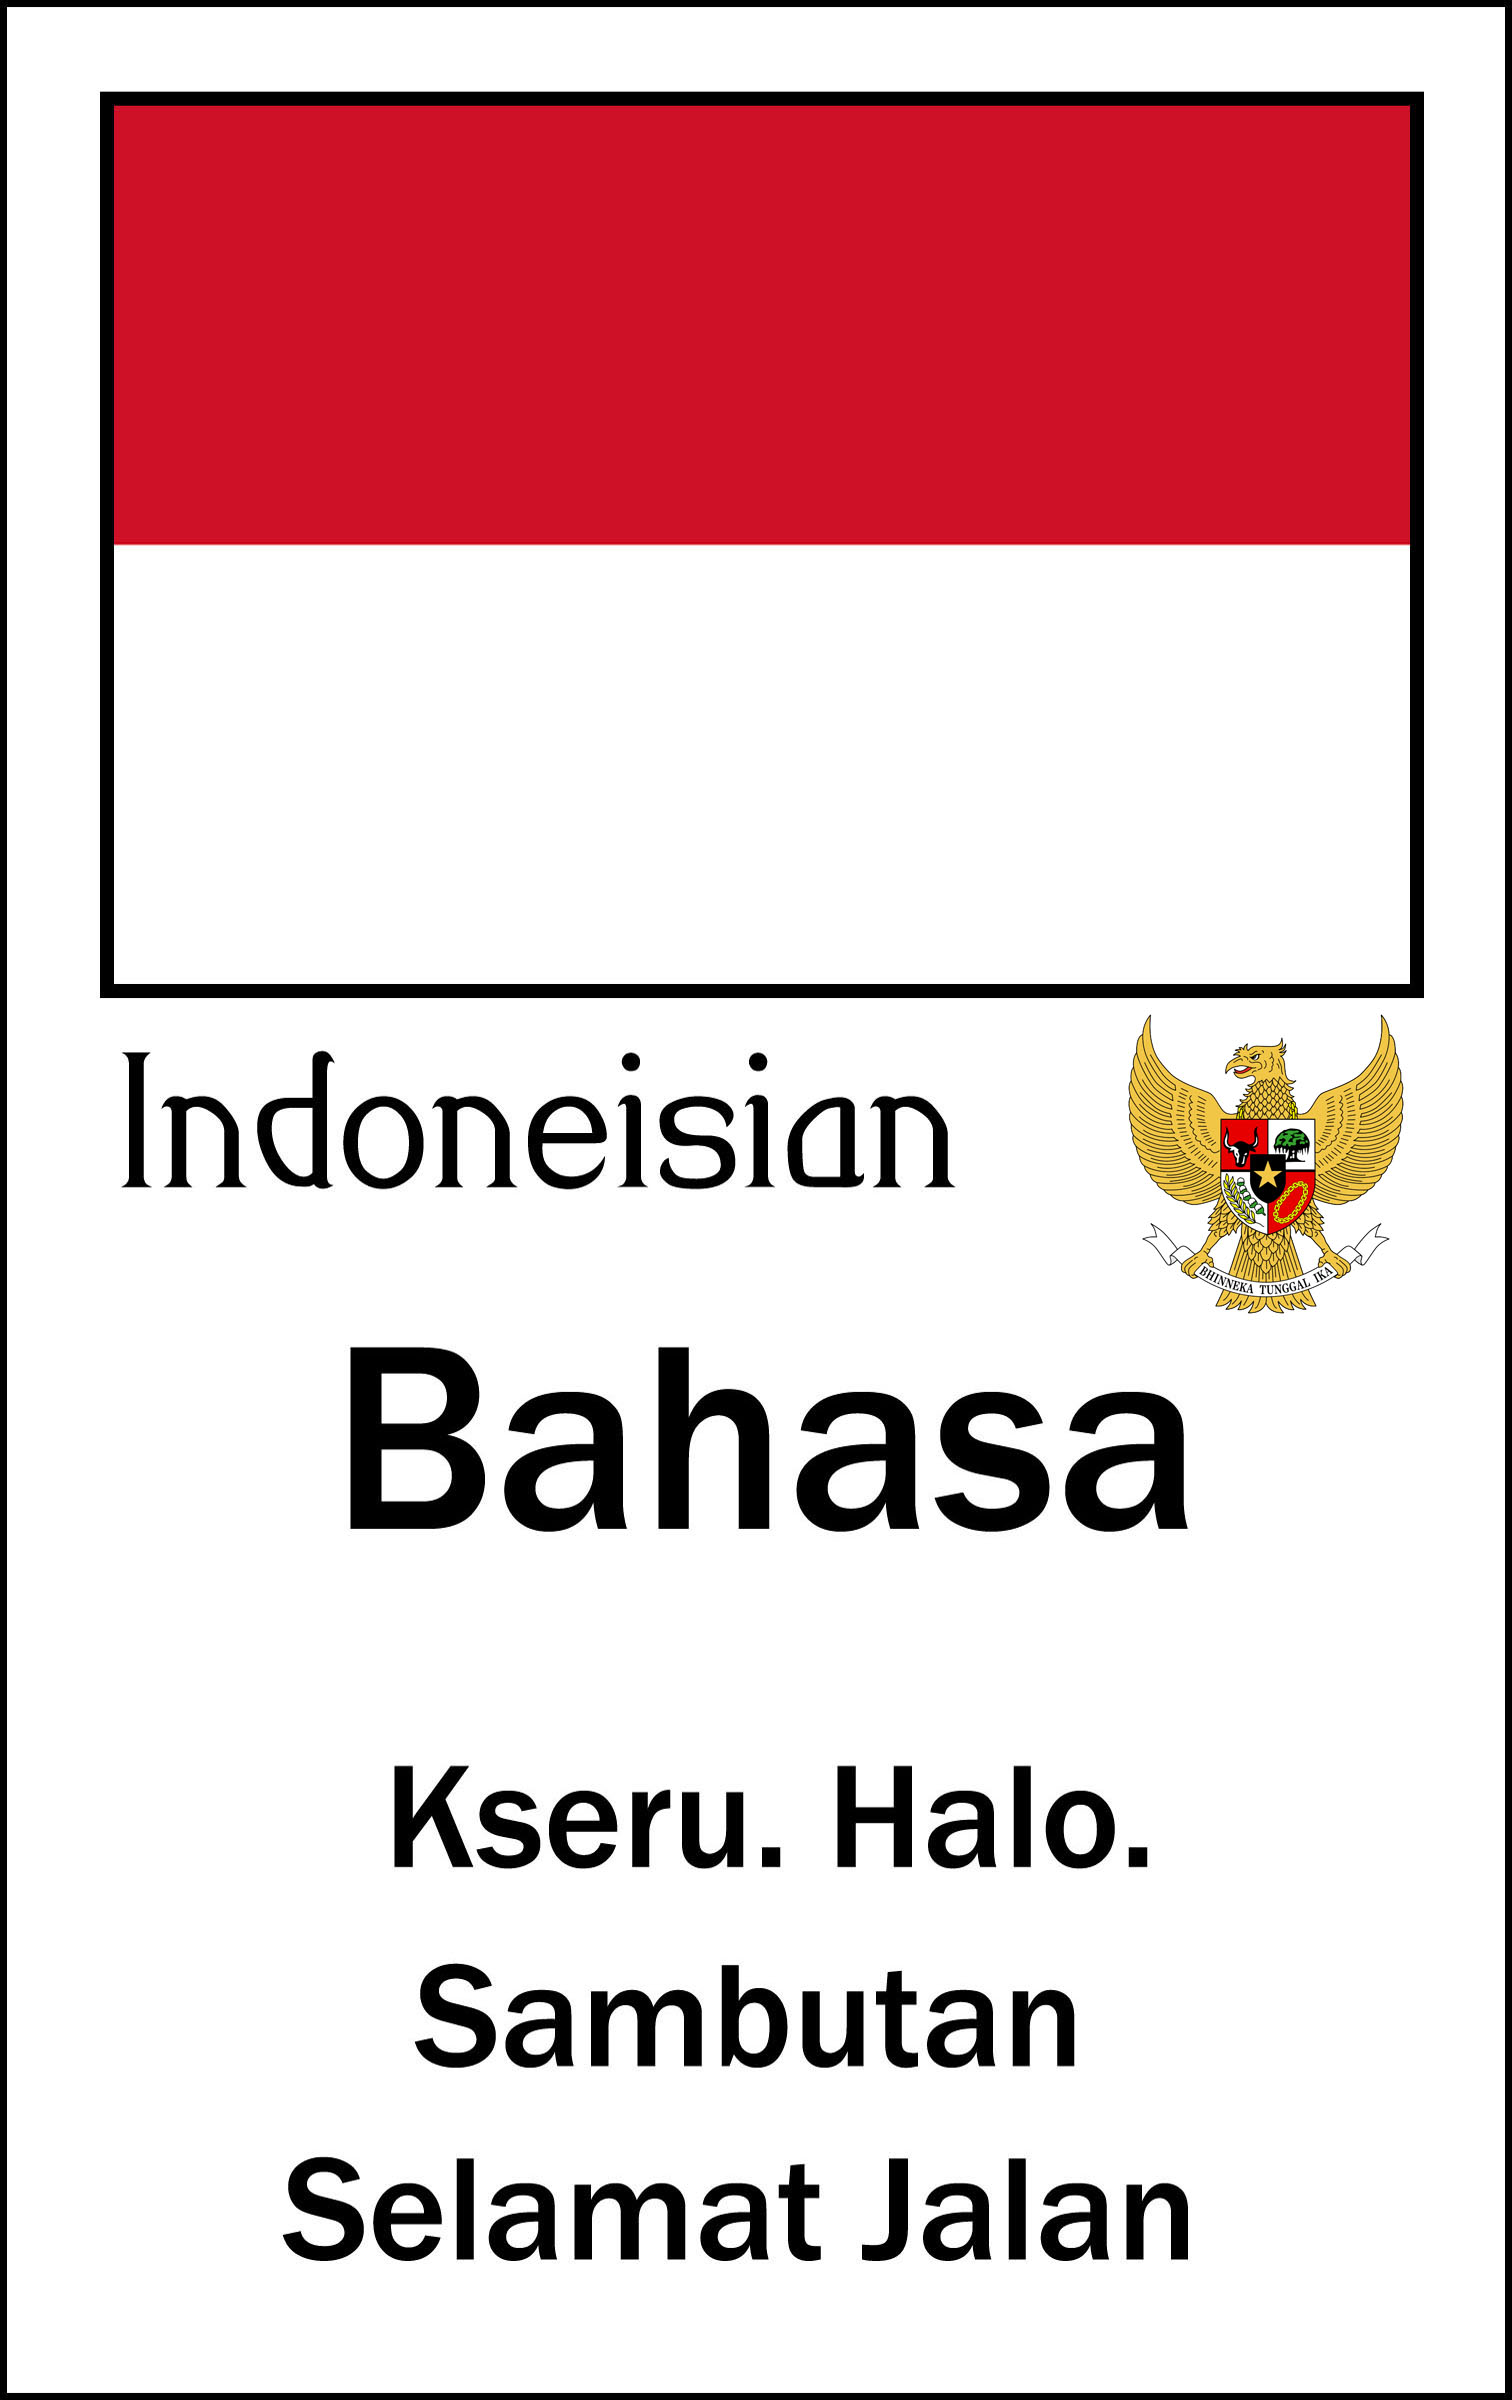 the indonesian language Indonesian (bahasa indonesia [baˈhasa indoneˈsia]) is the official language of indonesiait is a standardized register of malay, an austronesian language that has been used as a lingua franca in the multilingual indonesian archipelago for centuries indonesia is the fourth most populous nation in the world of its large population, the majority speak indonesian, making it one of the most.